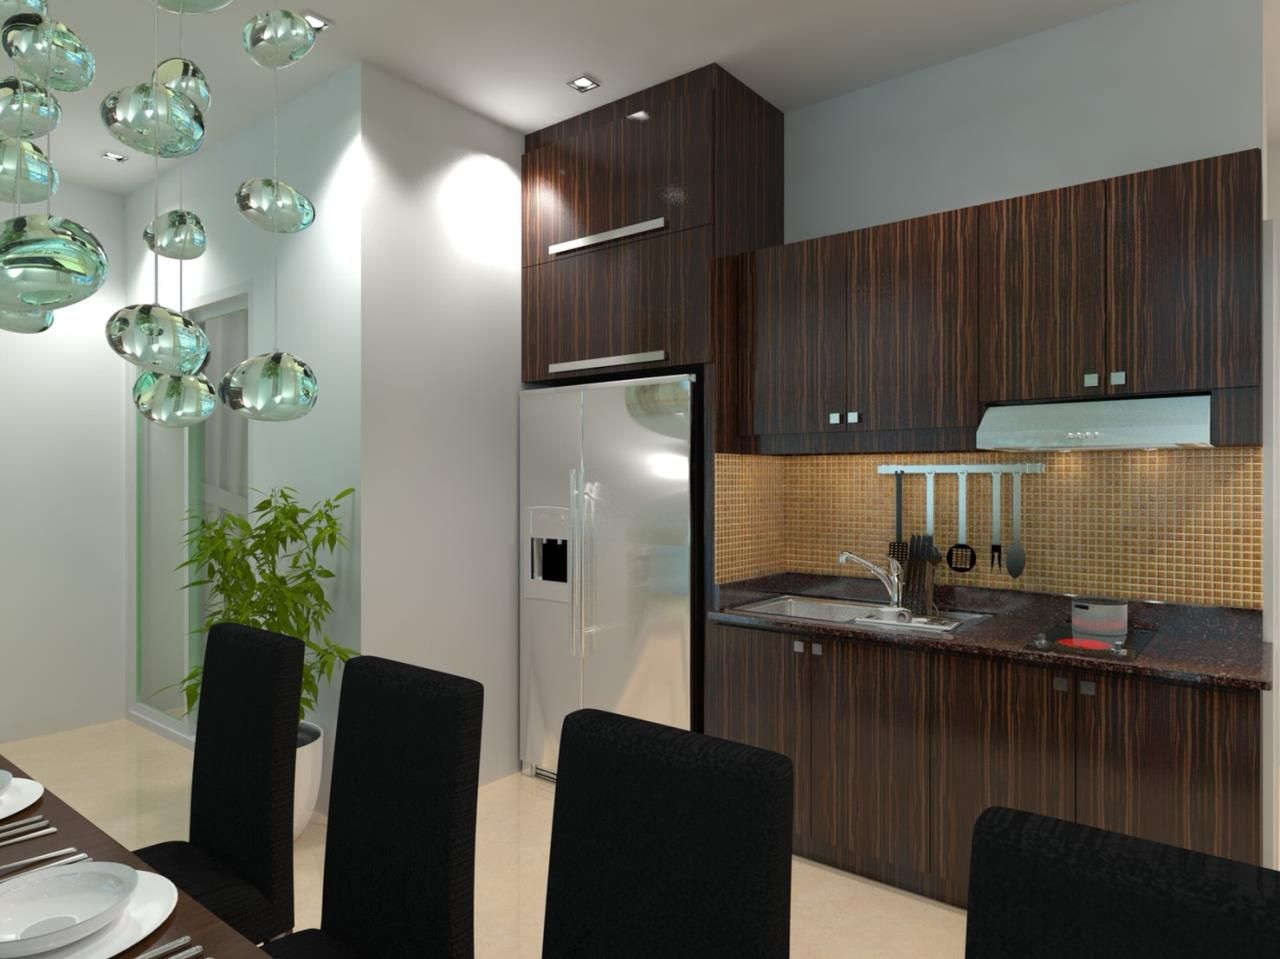 Signature Realty ( Thailand ) Co Ltd Agency's Furnished 1bedroom 46 sq.m condo with jacuzzi floor 2-10 at The Grand Jomtein Beach Pattaya 27